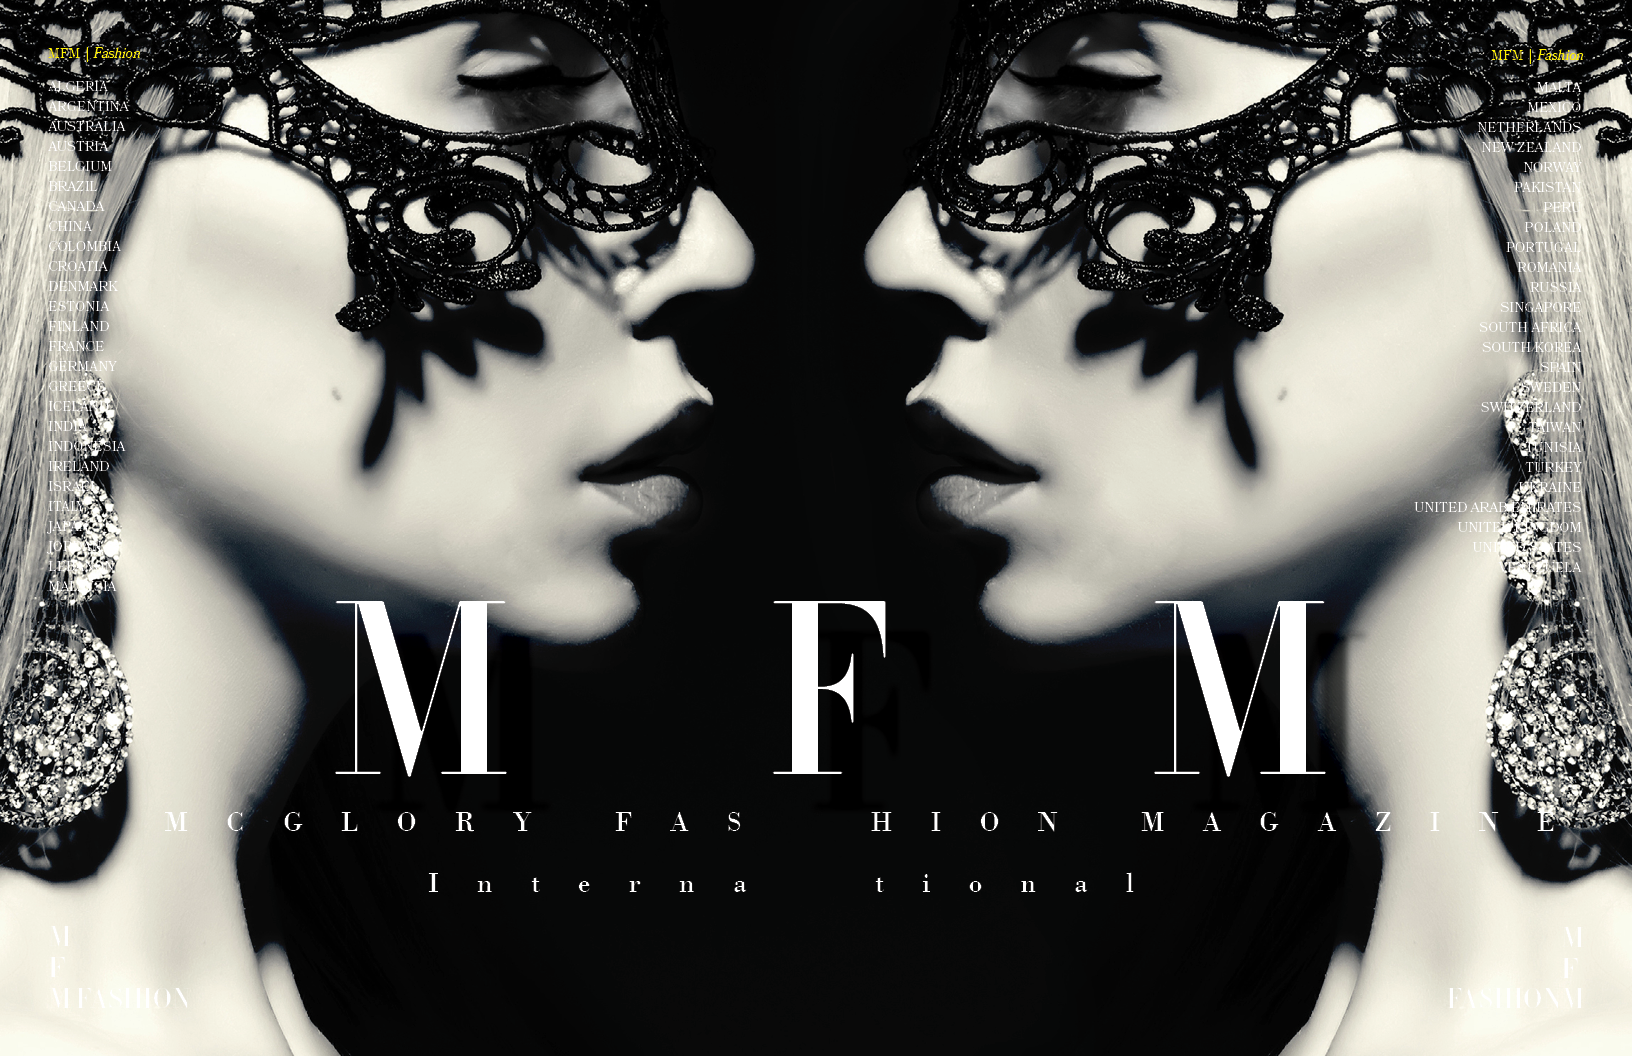 MFM first issue 6-edited 106 Part 1 space 1-1-1-1 PDF VOL 1 NEW NEW print7.png